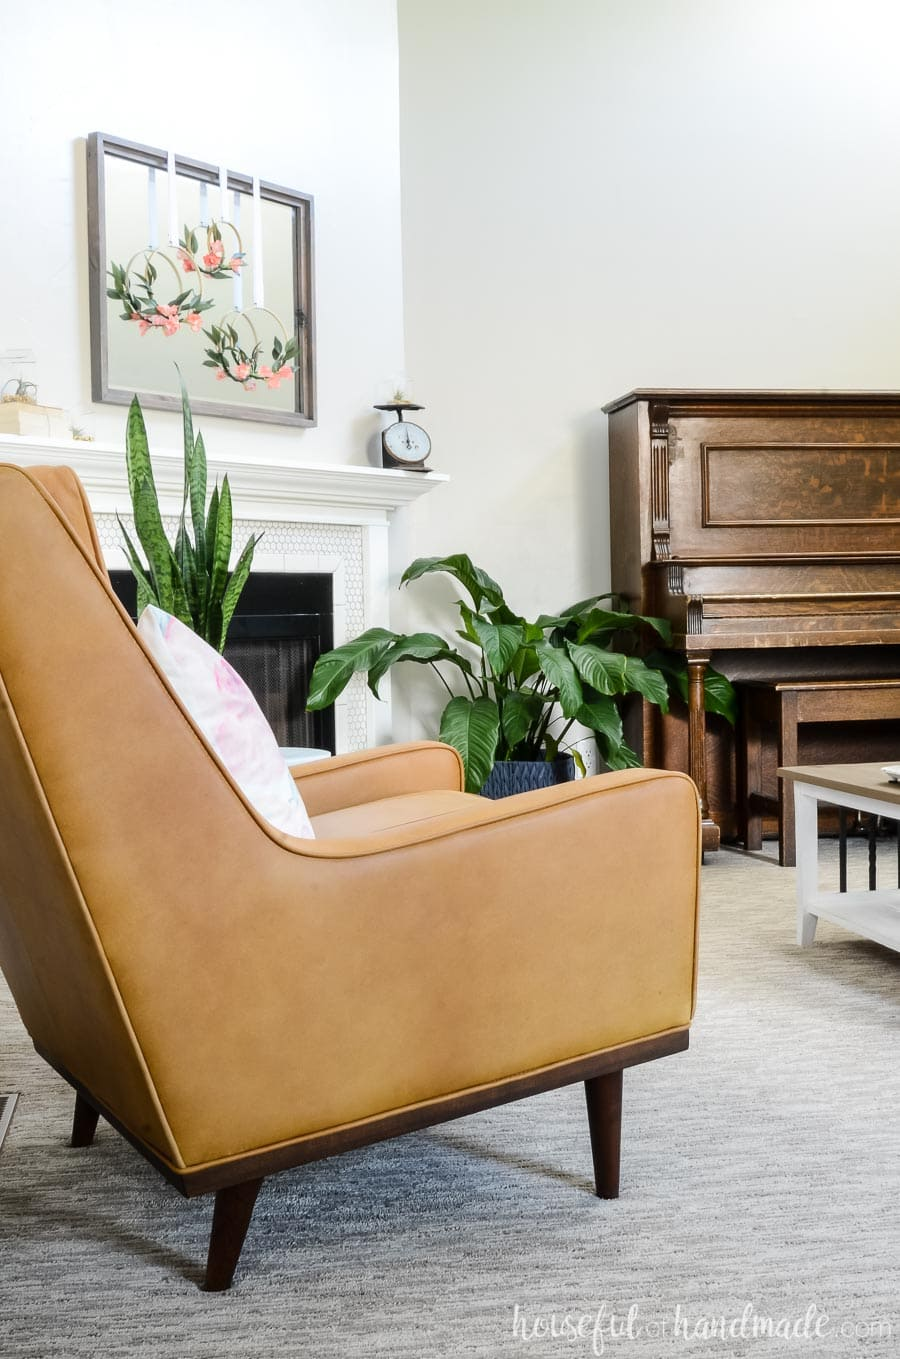 A living room refresh is easy by adding a few key pieces to what you already have. See how we styled our new Article.com chair to give our space new life. Housefulofhandmade.com